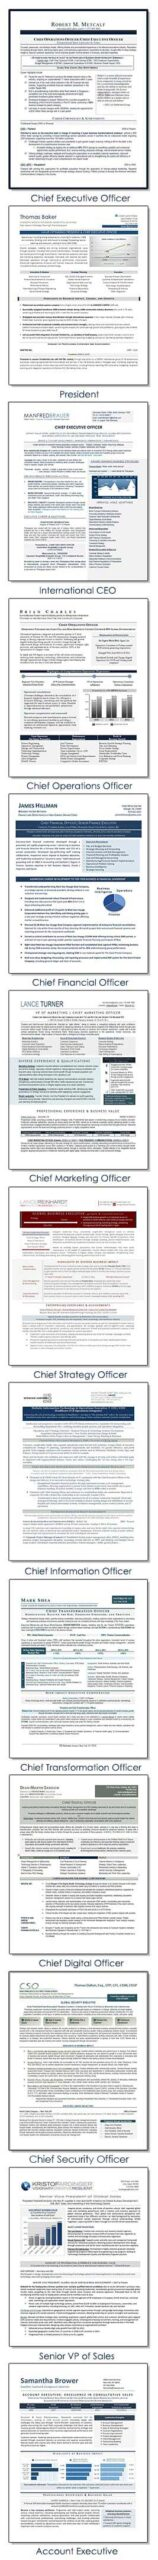 top executive resume writing services in and writer new career center builder infographic Resume Top Executive Resume Writer